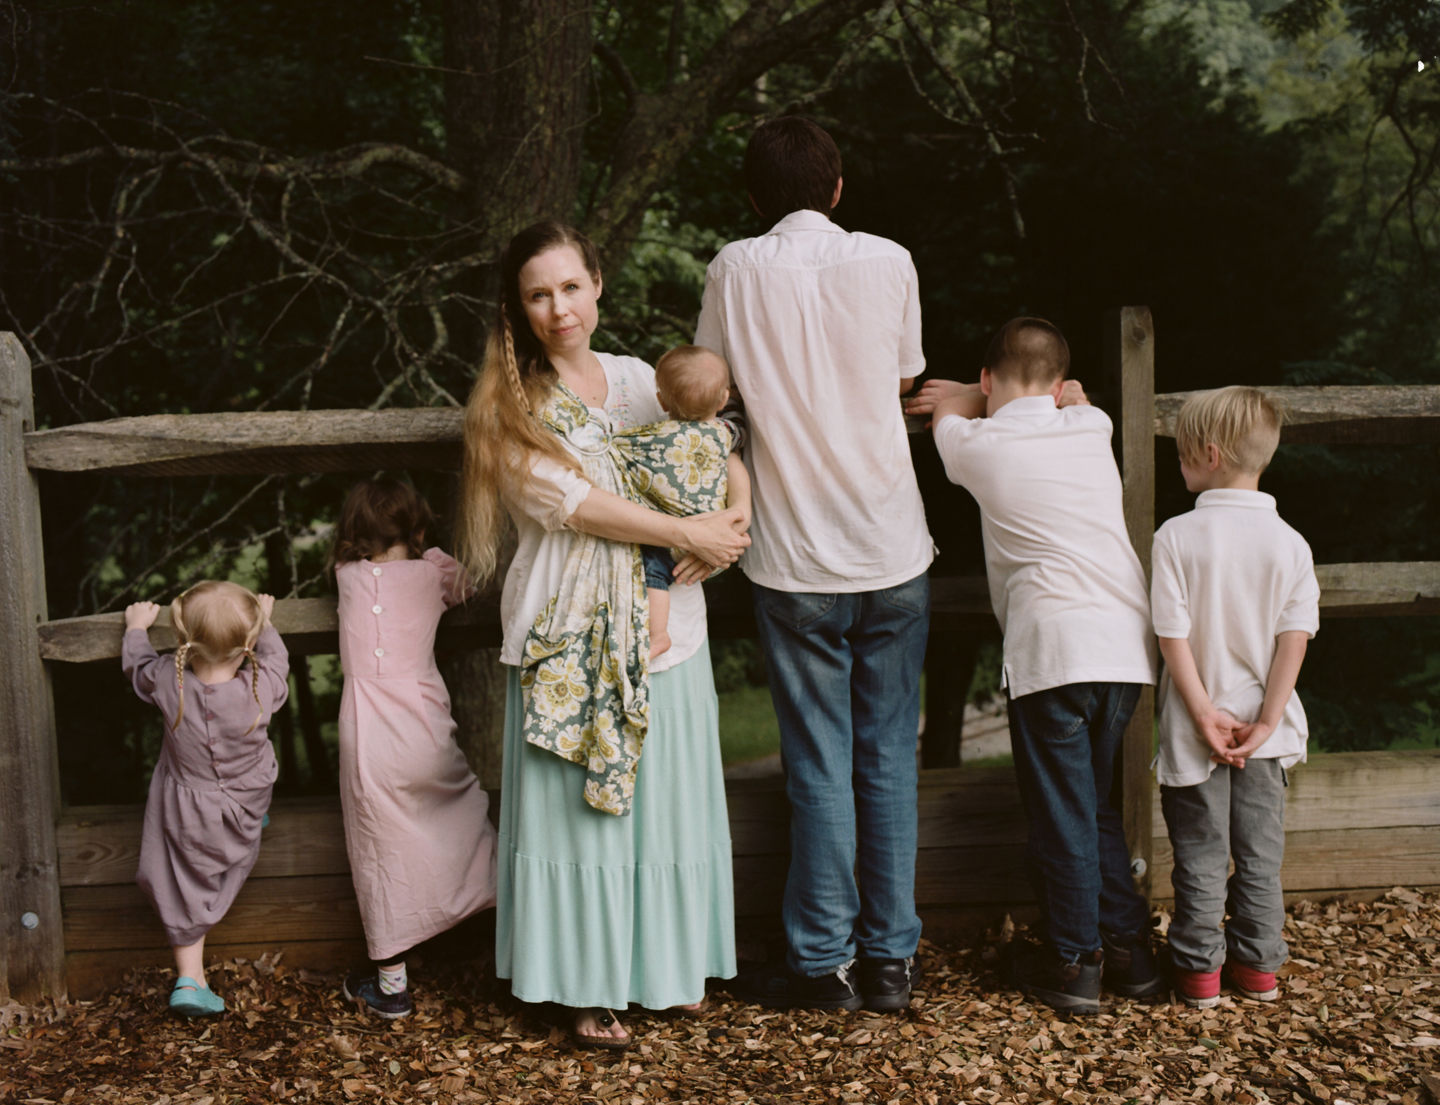 {quote}A Wife With a Purpose,{quote} the online super star Ayla Stewart, poses for a portrait at a public park in the southeastern United States on August 23, 2017 along with her six children. She's known for promoting #tradlife (traditionalist homemaking and white culture). She's been kicked off twitter for hate speech, though has started accounts on Gab and other platforms, and continues to have a huge youtube following. Though she believes there are many definitions of the word Nazi, she says there is only one definition of the word racist and she claims she is not racist.